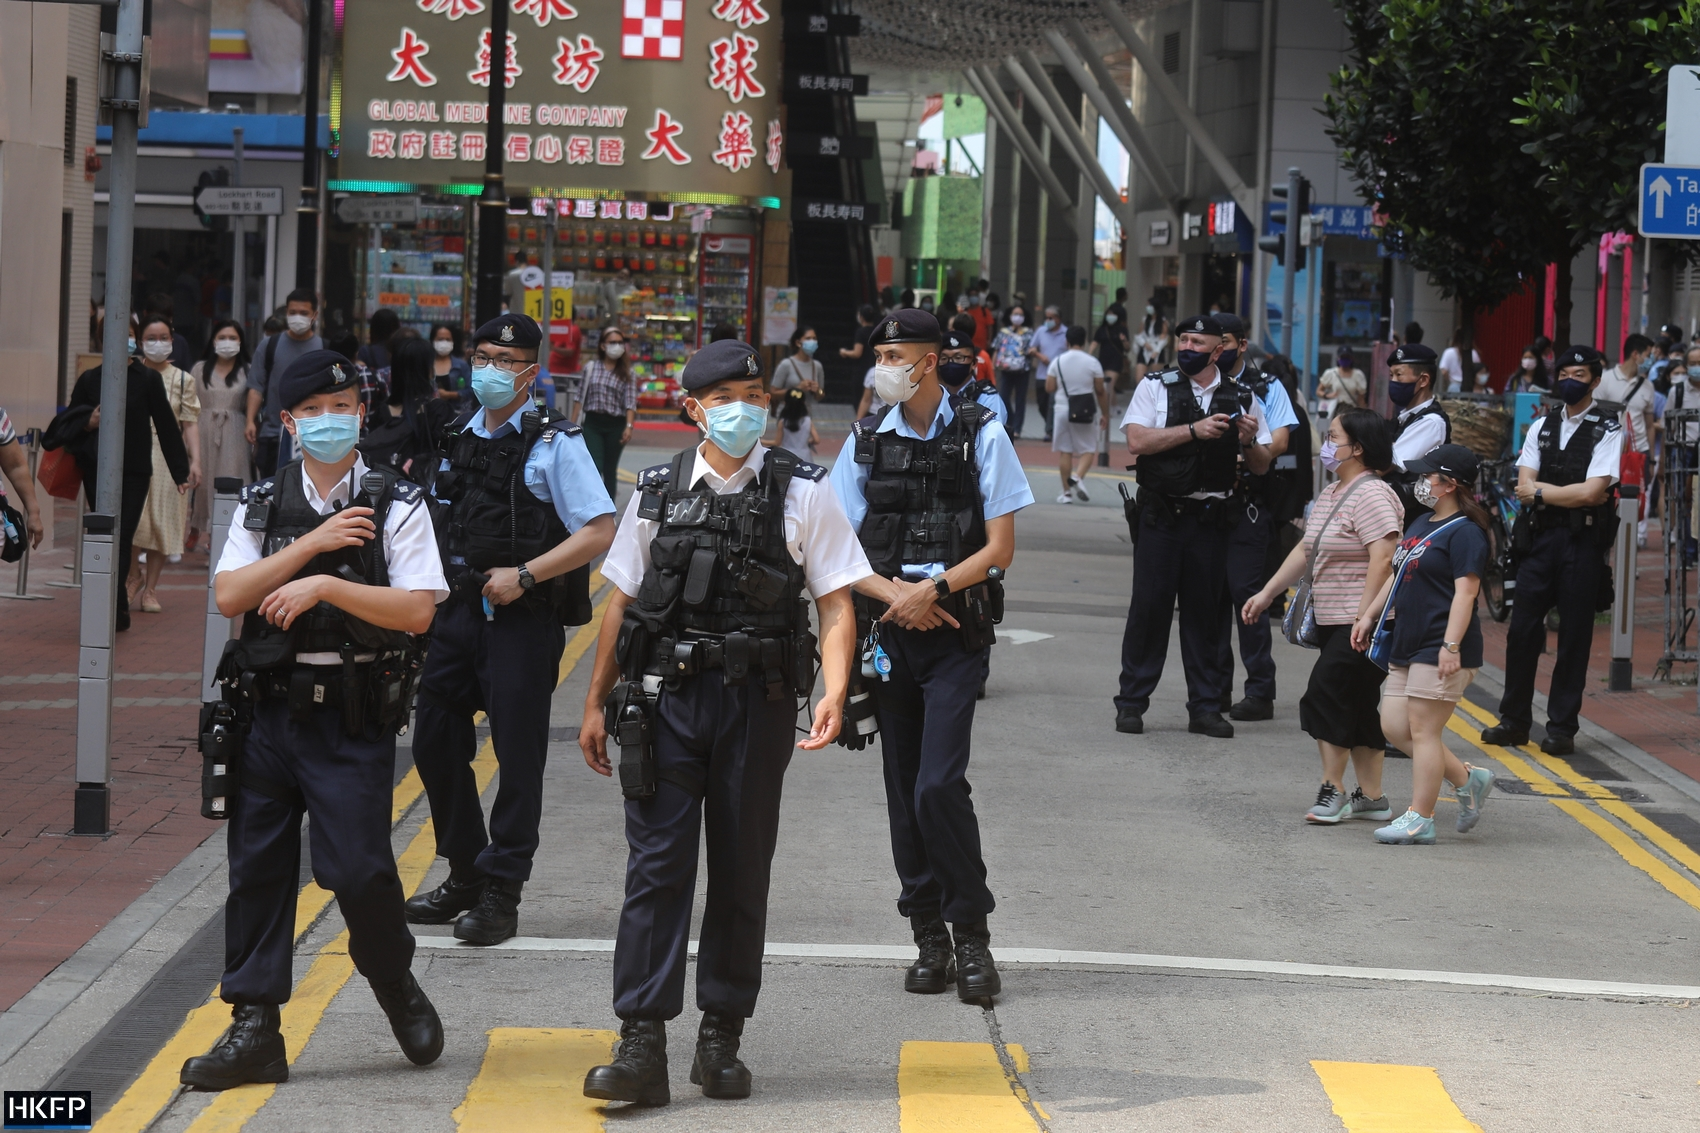 Chinese National Day October 1, 2021 Police Causeway Bay protective vest